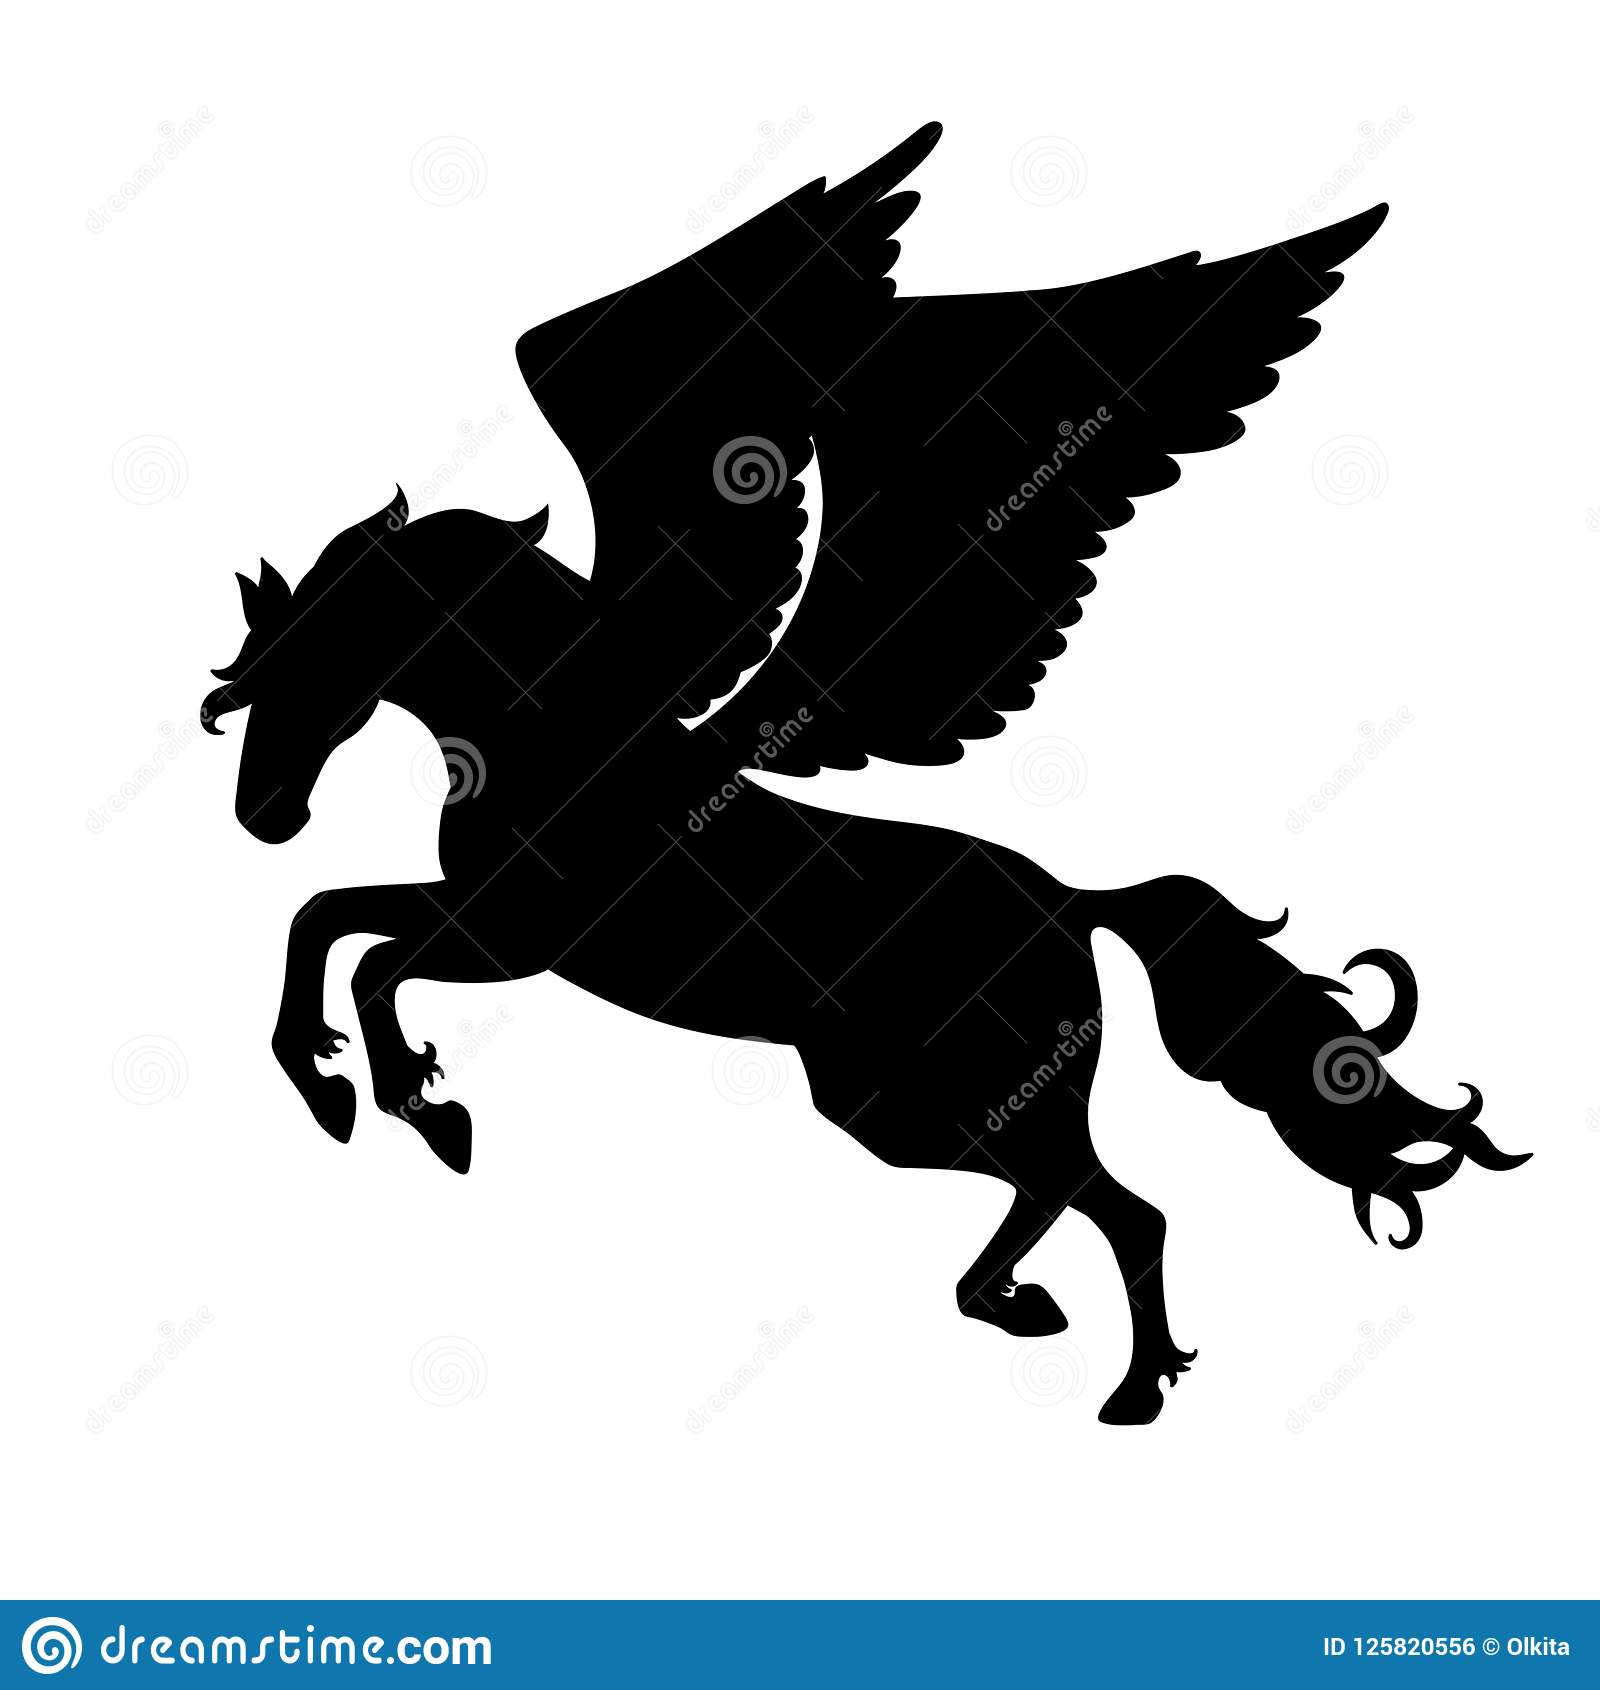 Isolated Black Silhouette Galloping Jumping Pegasus On White Background Side View Of Horse With Wings Stock Vector Illustration Of Horse Fairytale 125820556